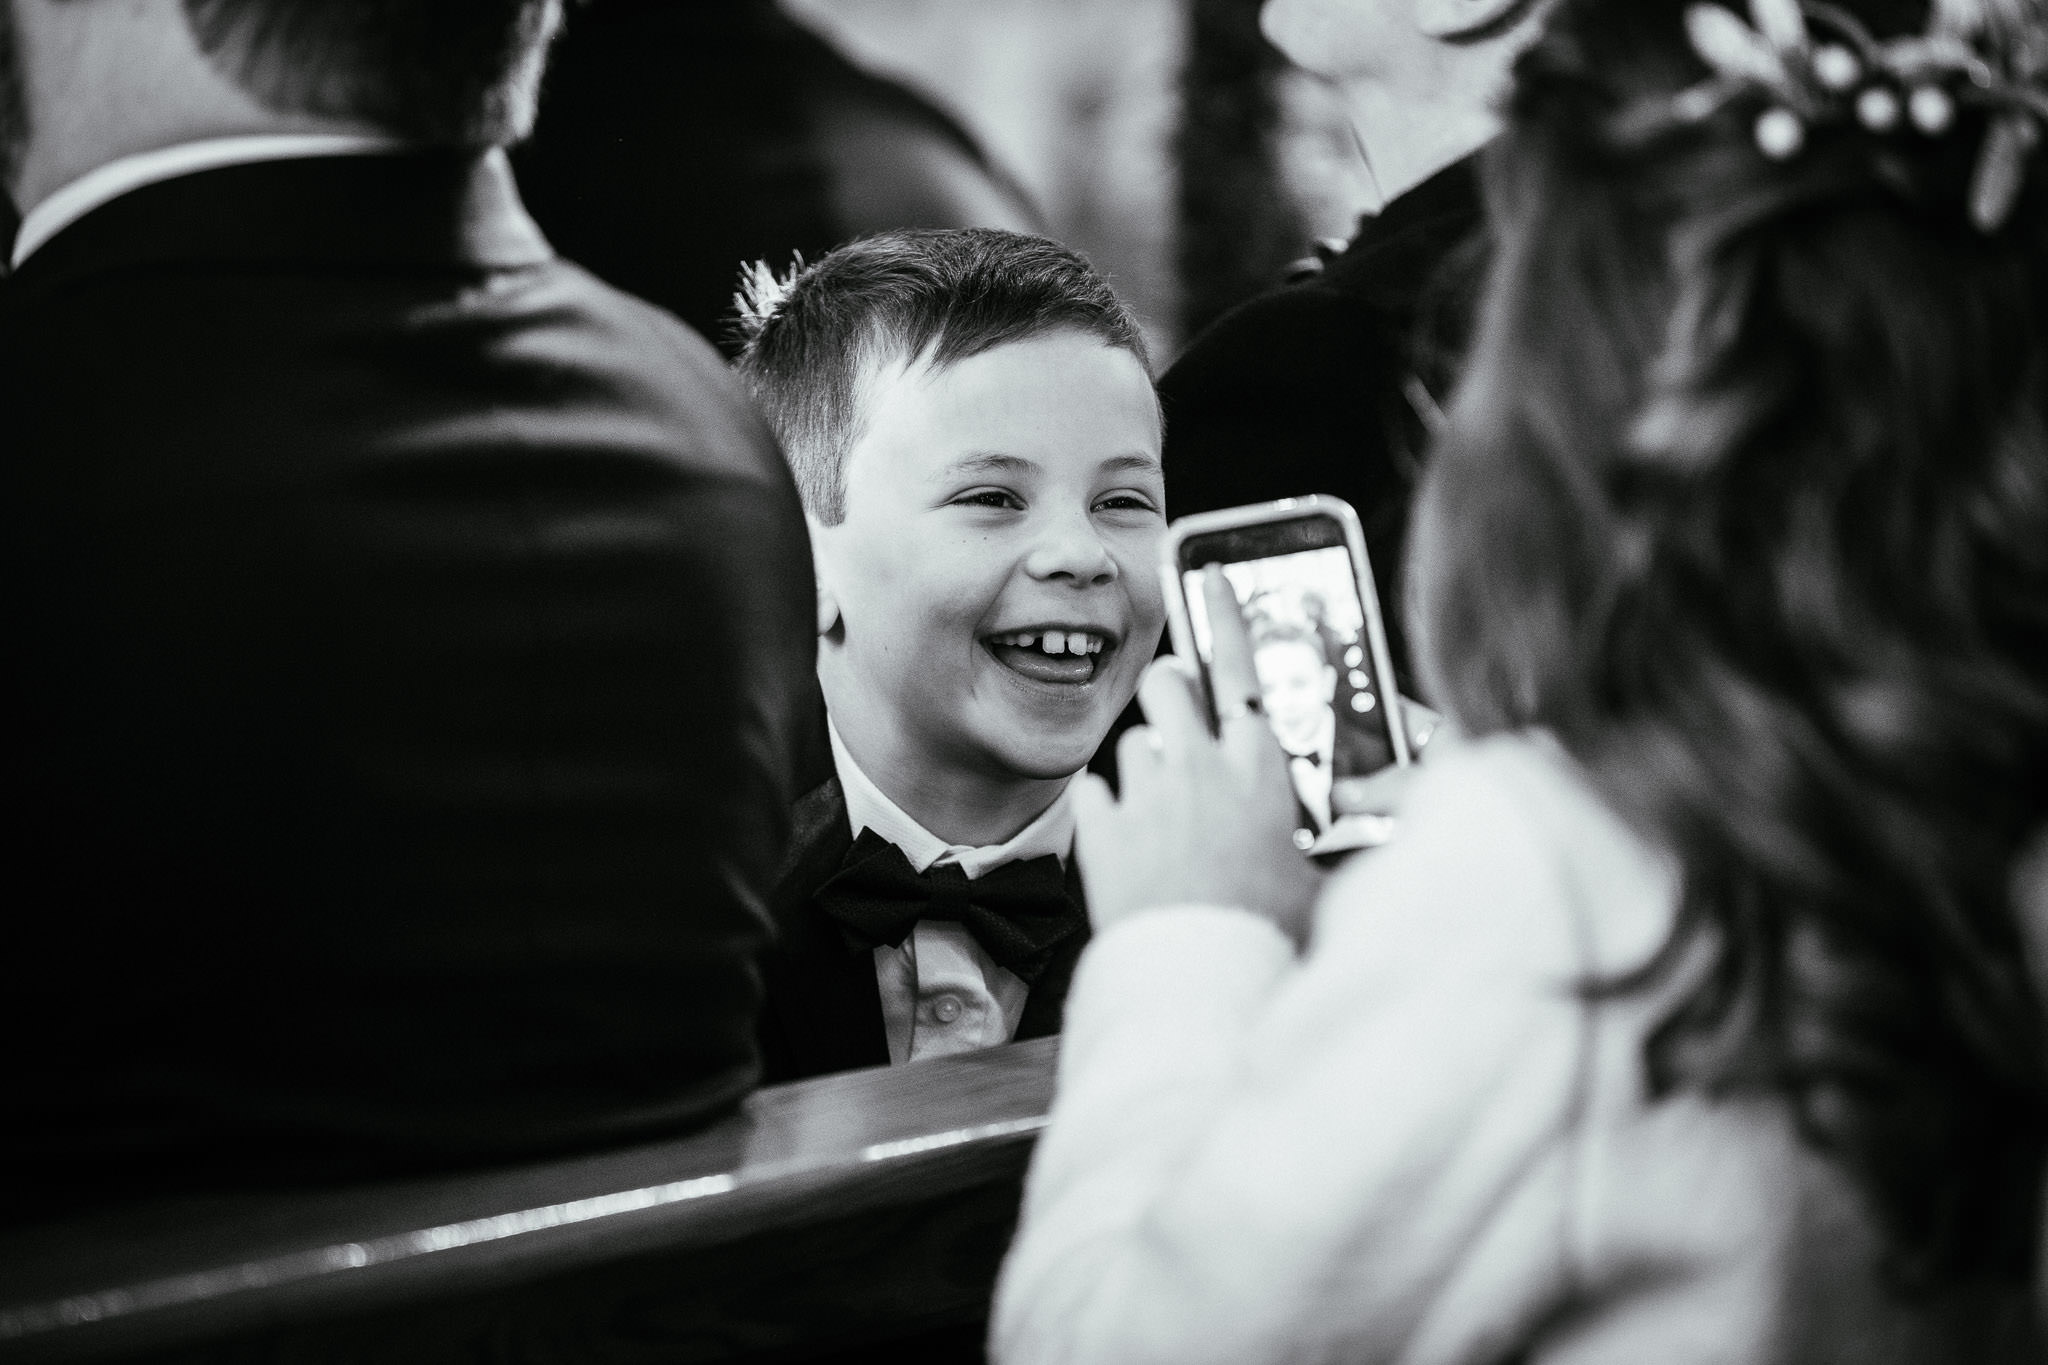 kid laughing during wedding ceremony at St Brigid's Church Oldcastle